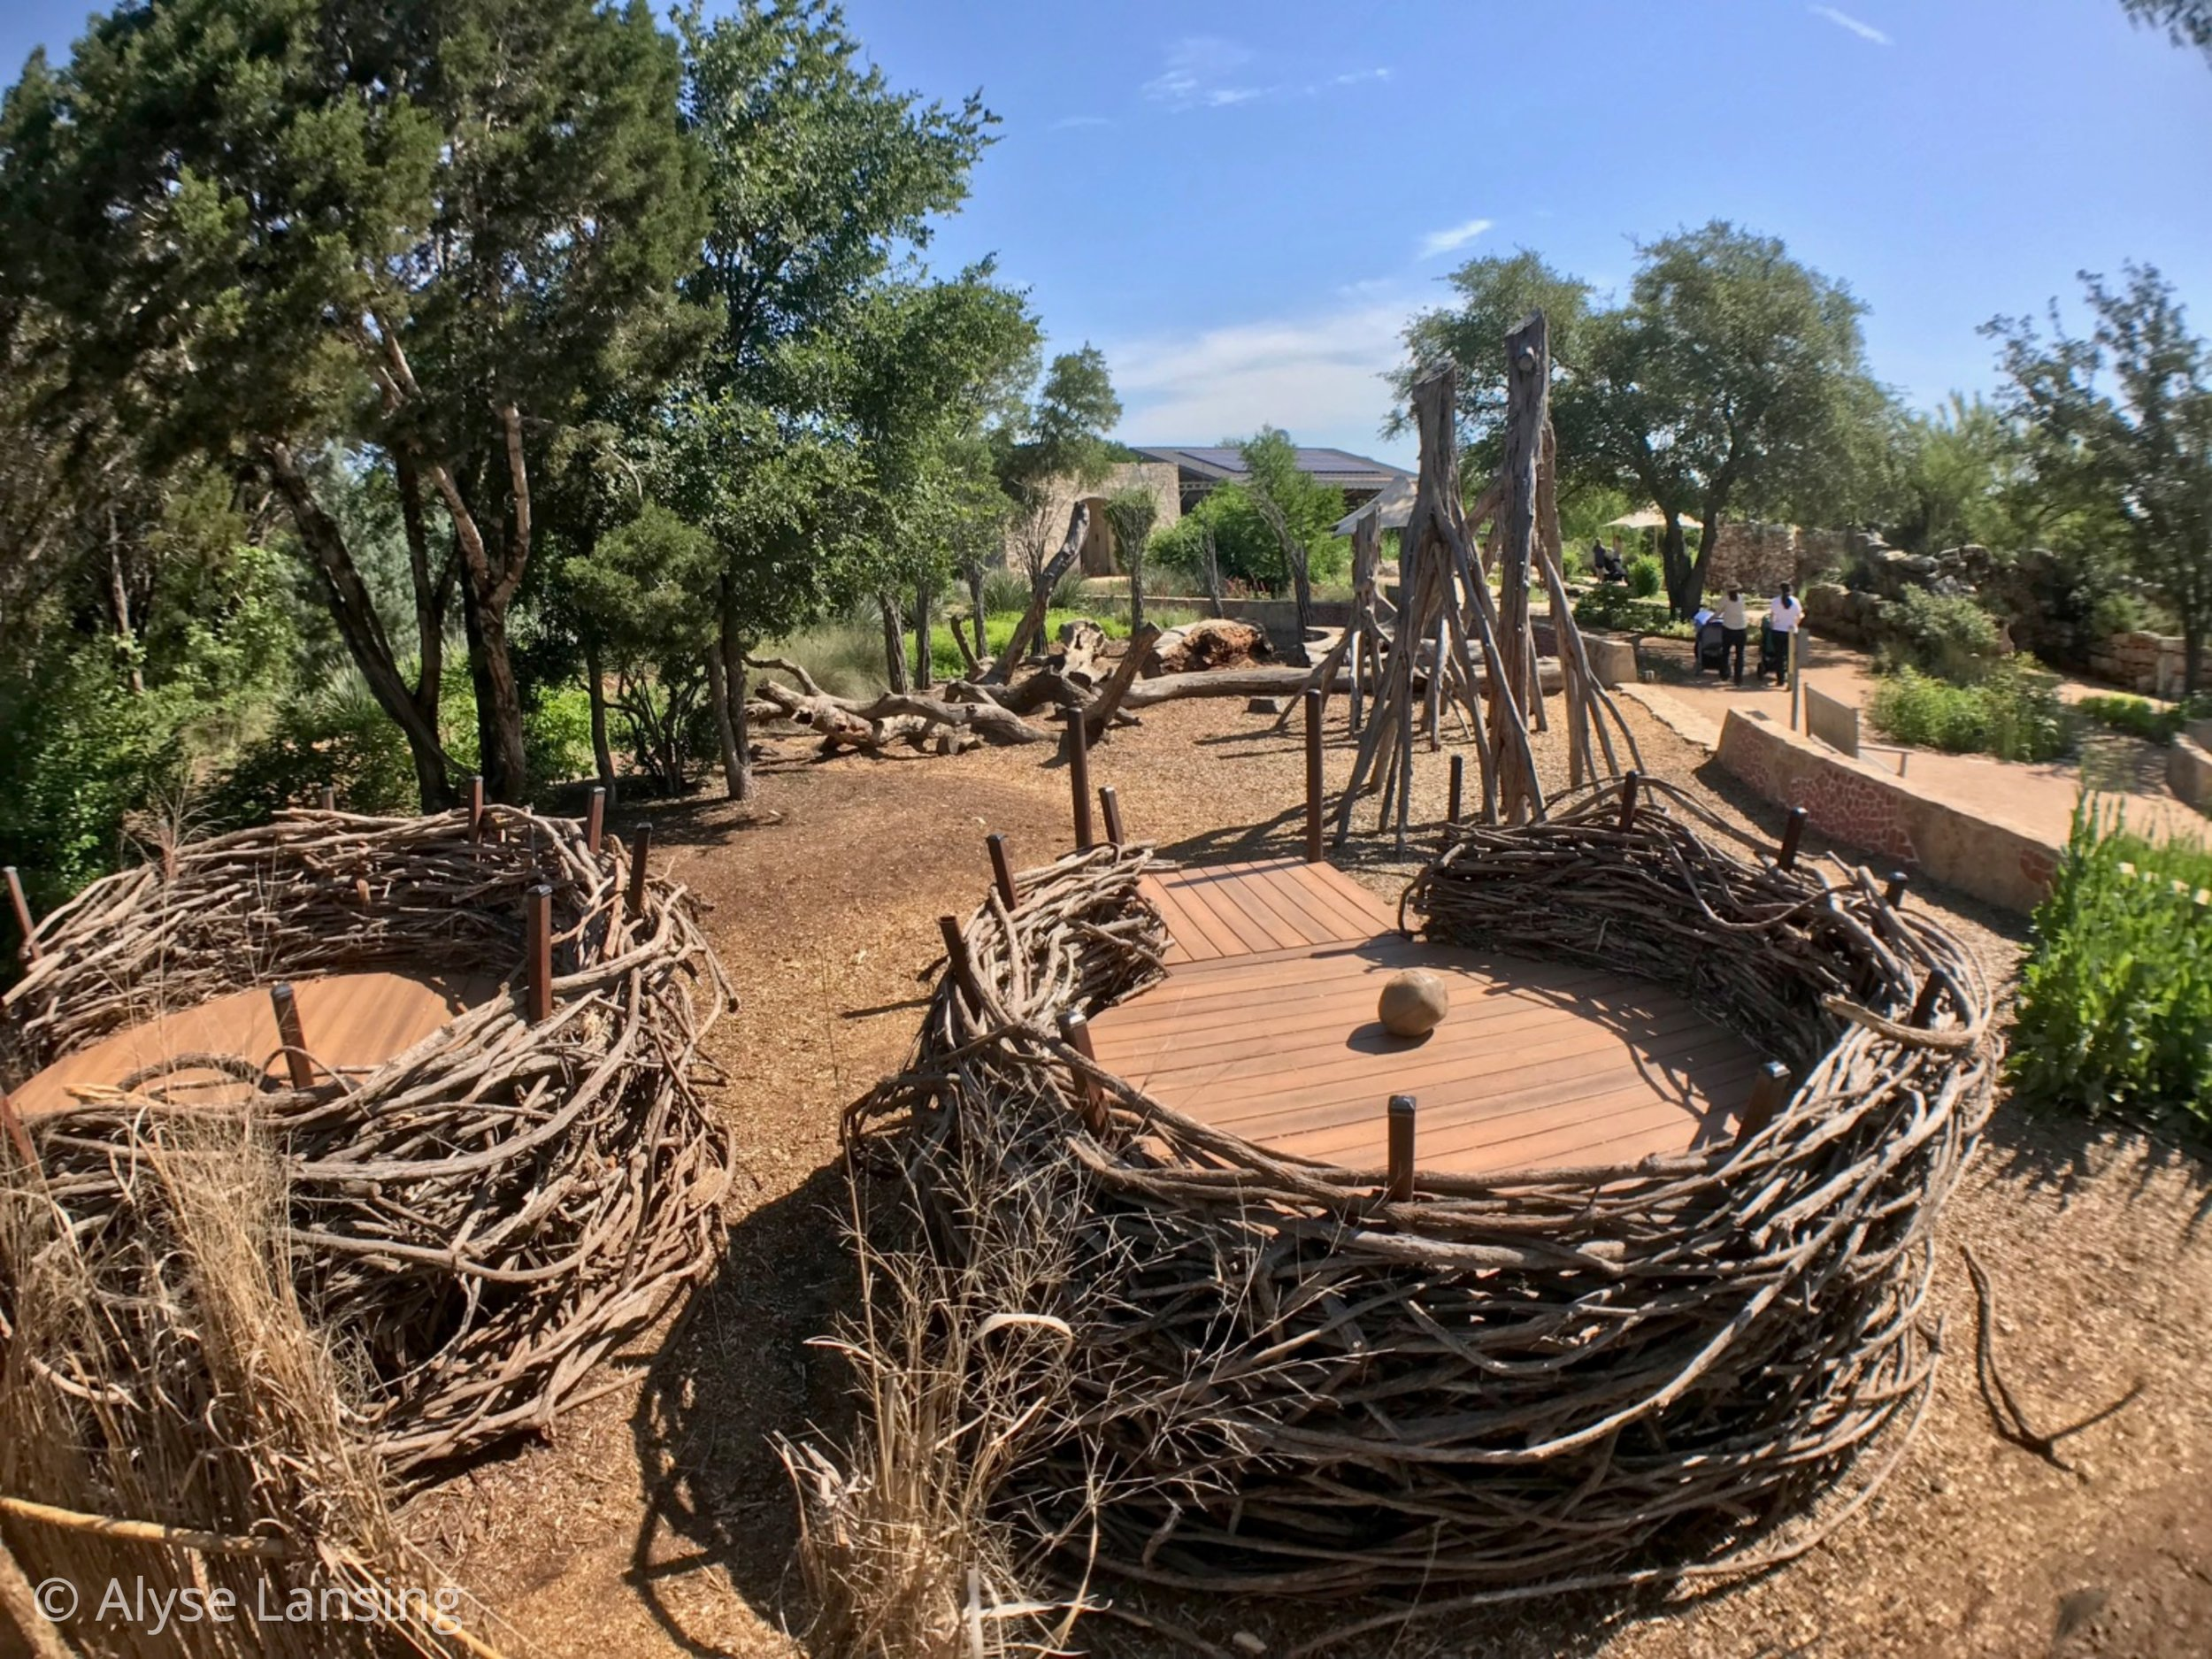 Birds nest play forts are as artistically/lovingly woven as a robin herself would do. This place is a little village of bird nest homes. Or forts, if you roll that way.